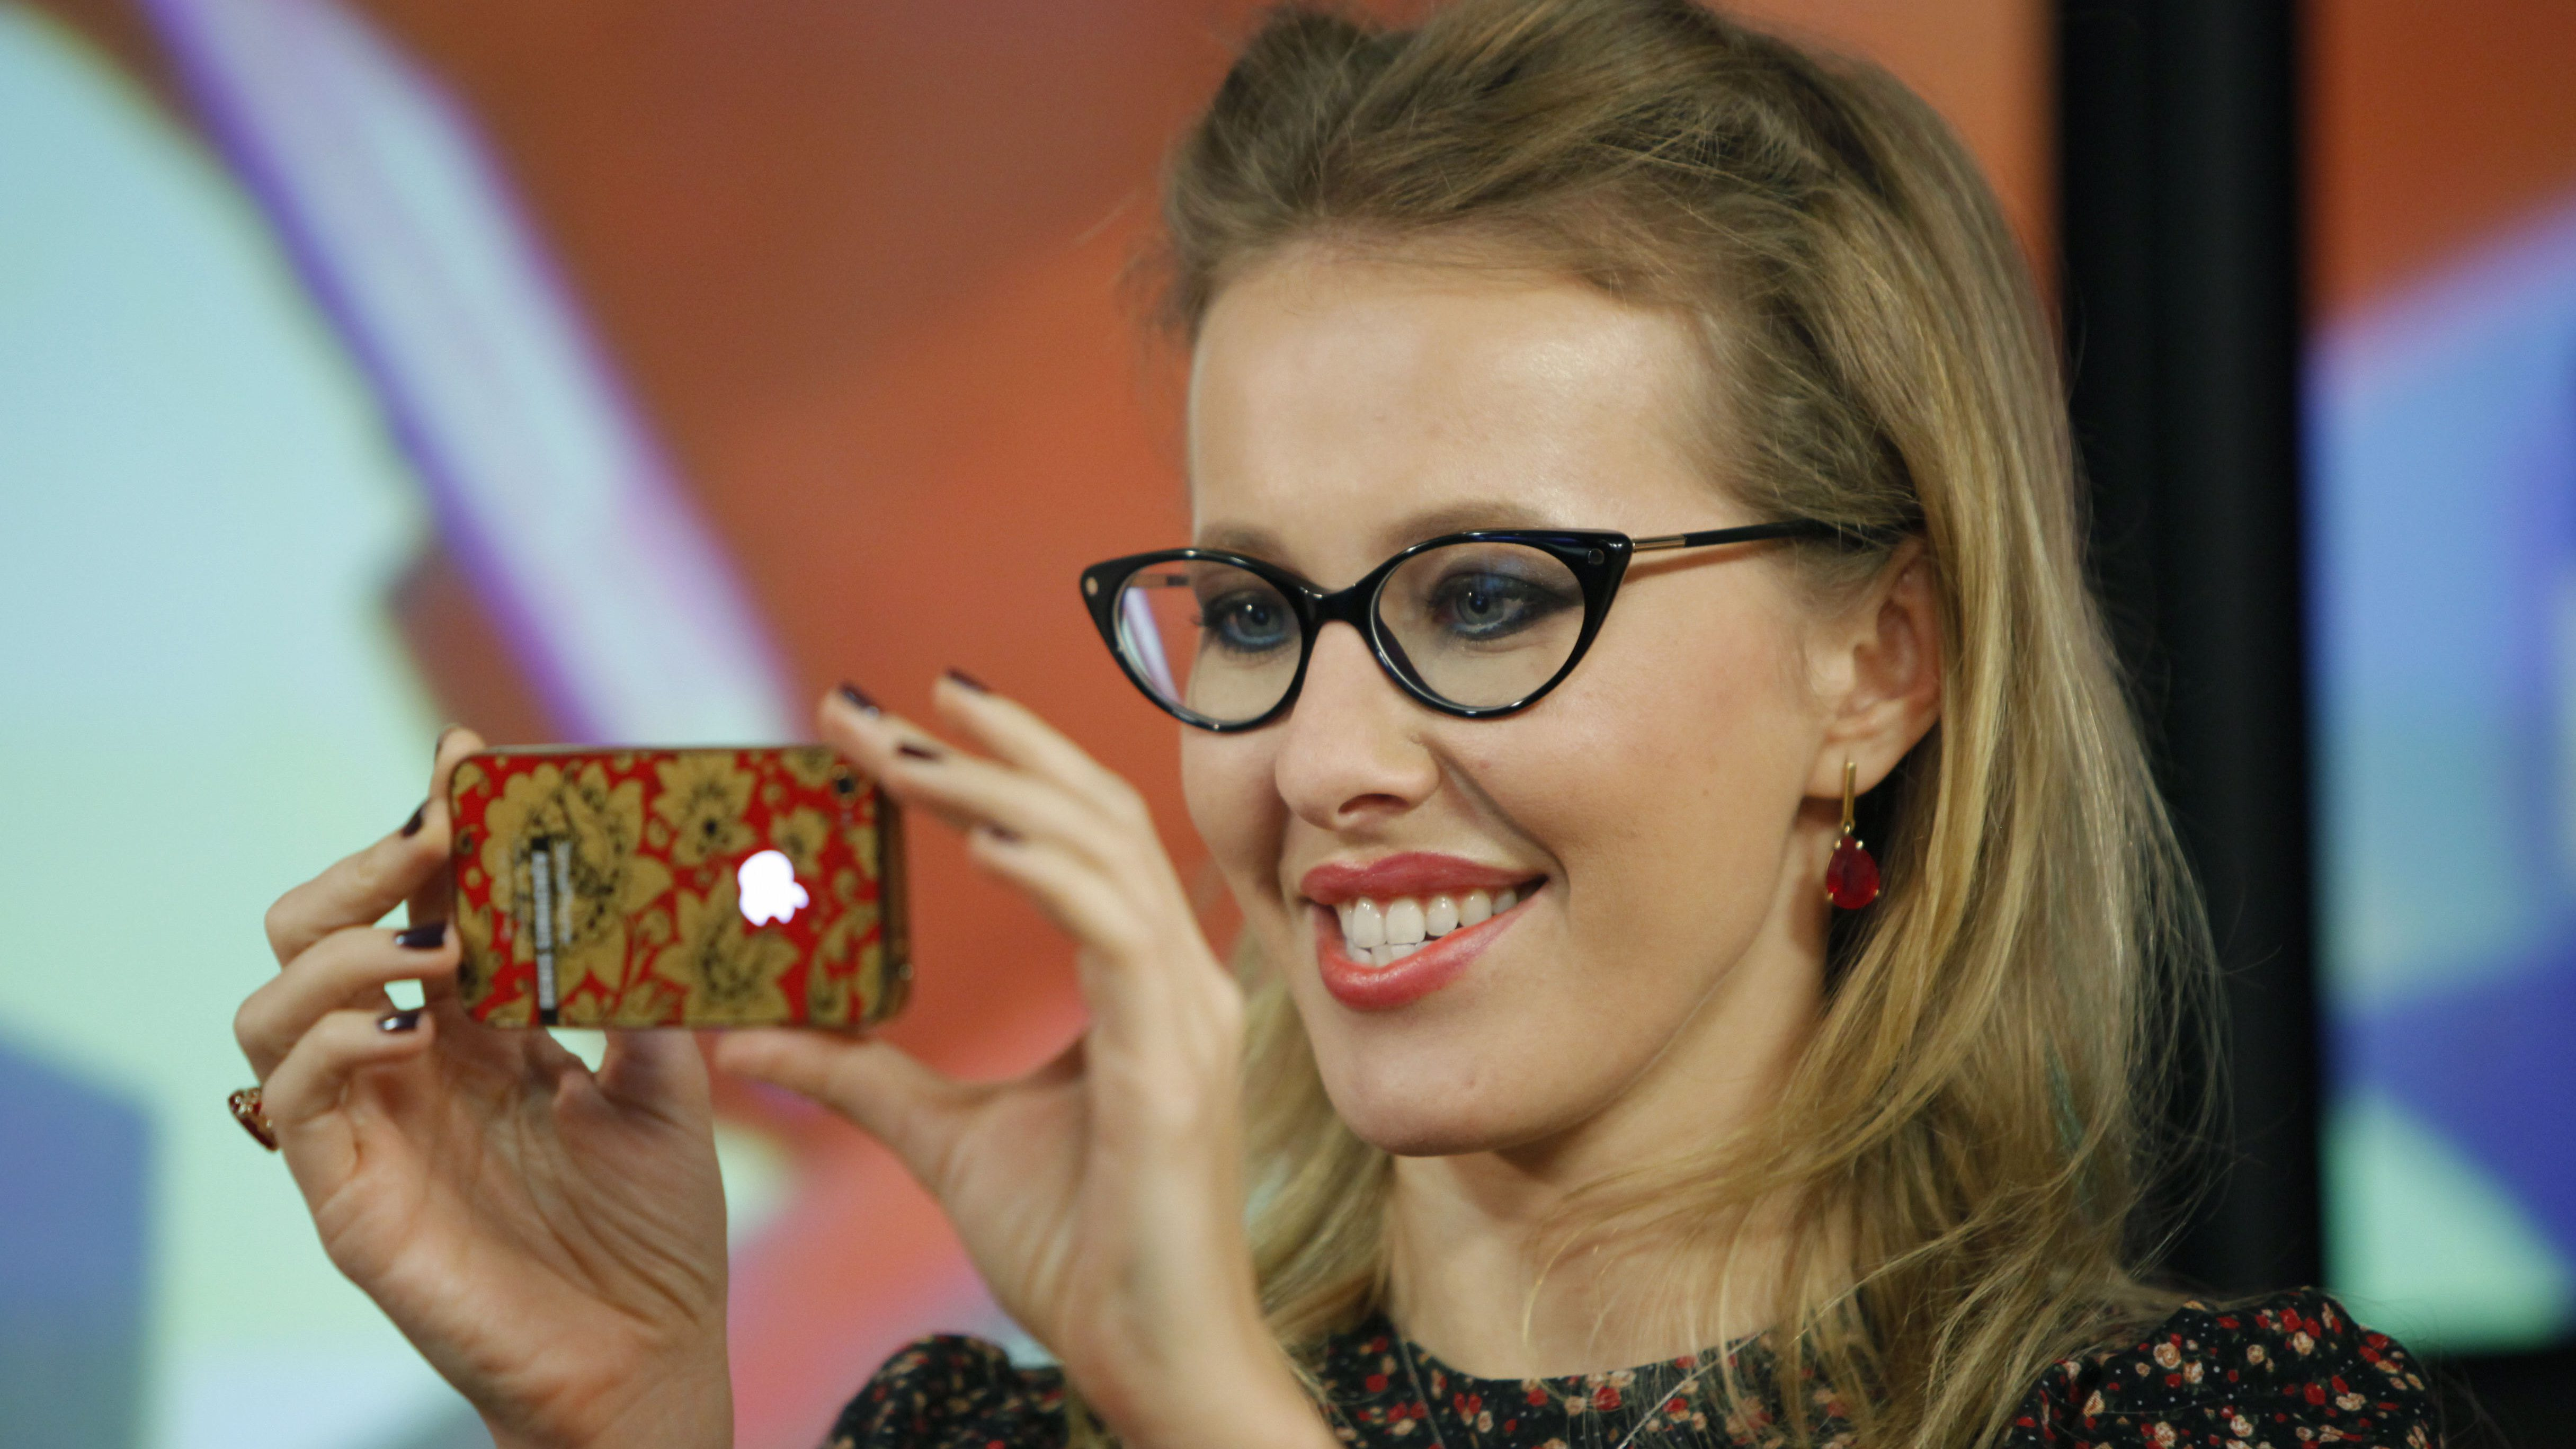 Ksenia Sobchak, the socialite daughter of Putin's mentor, is one rumored candidate.